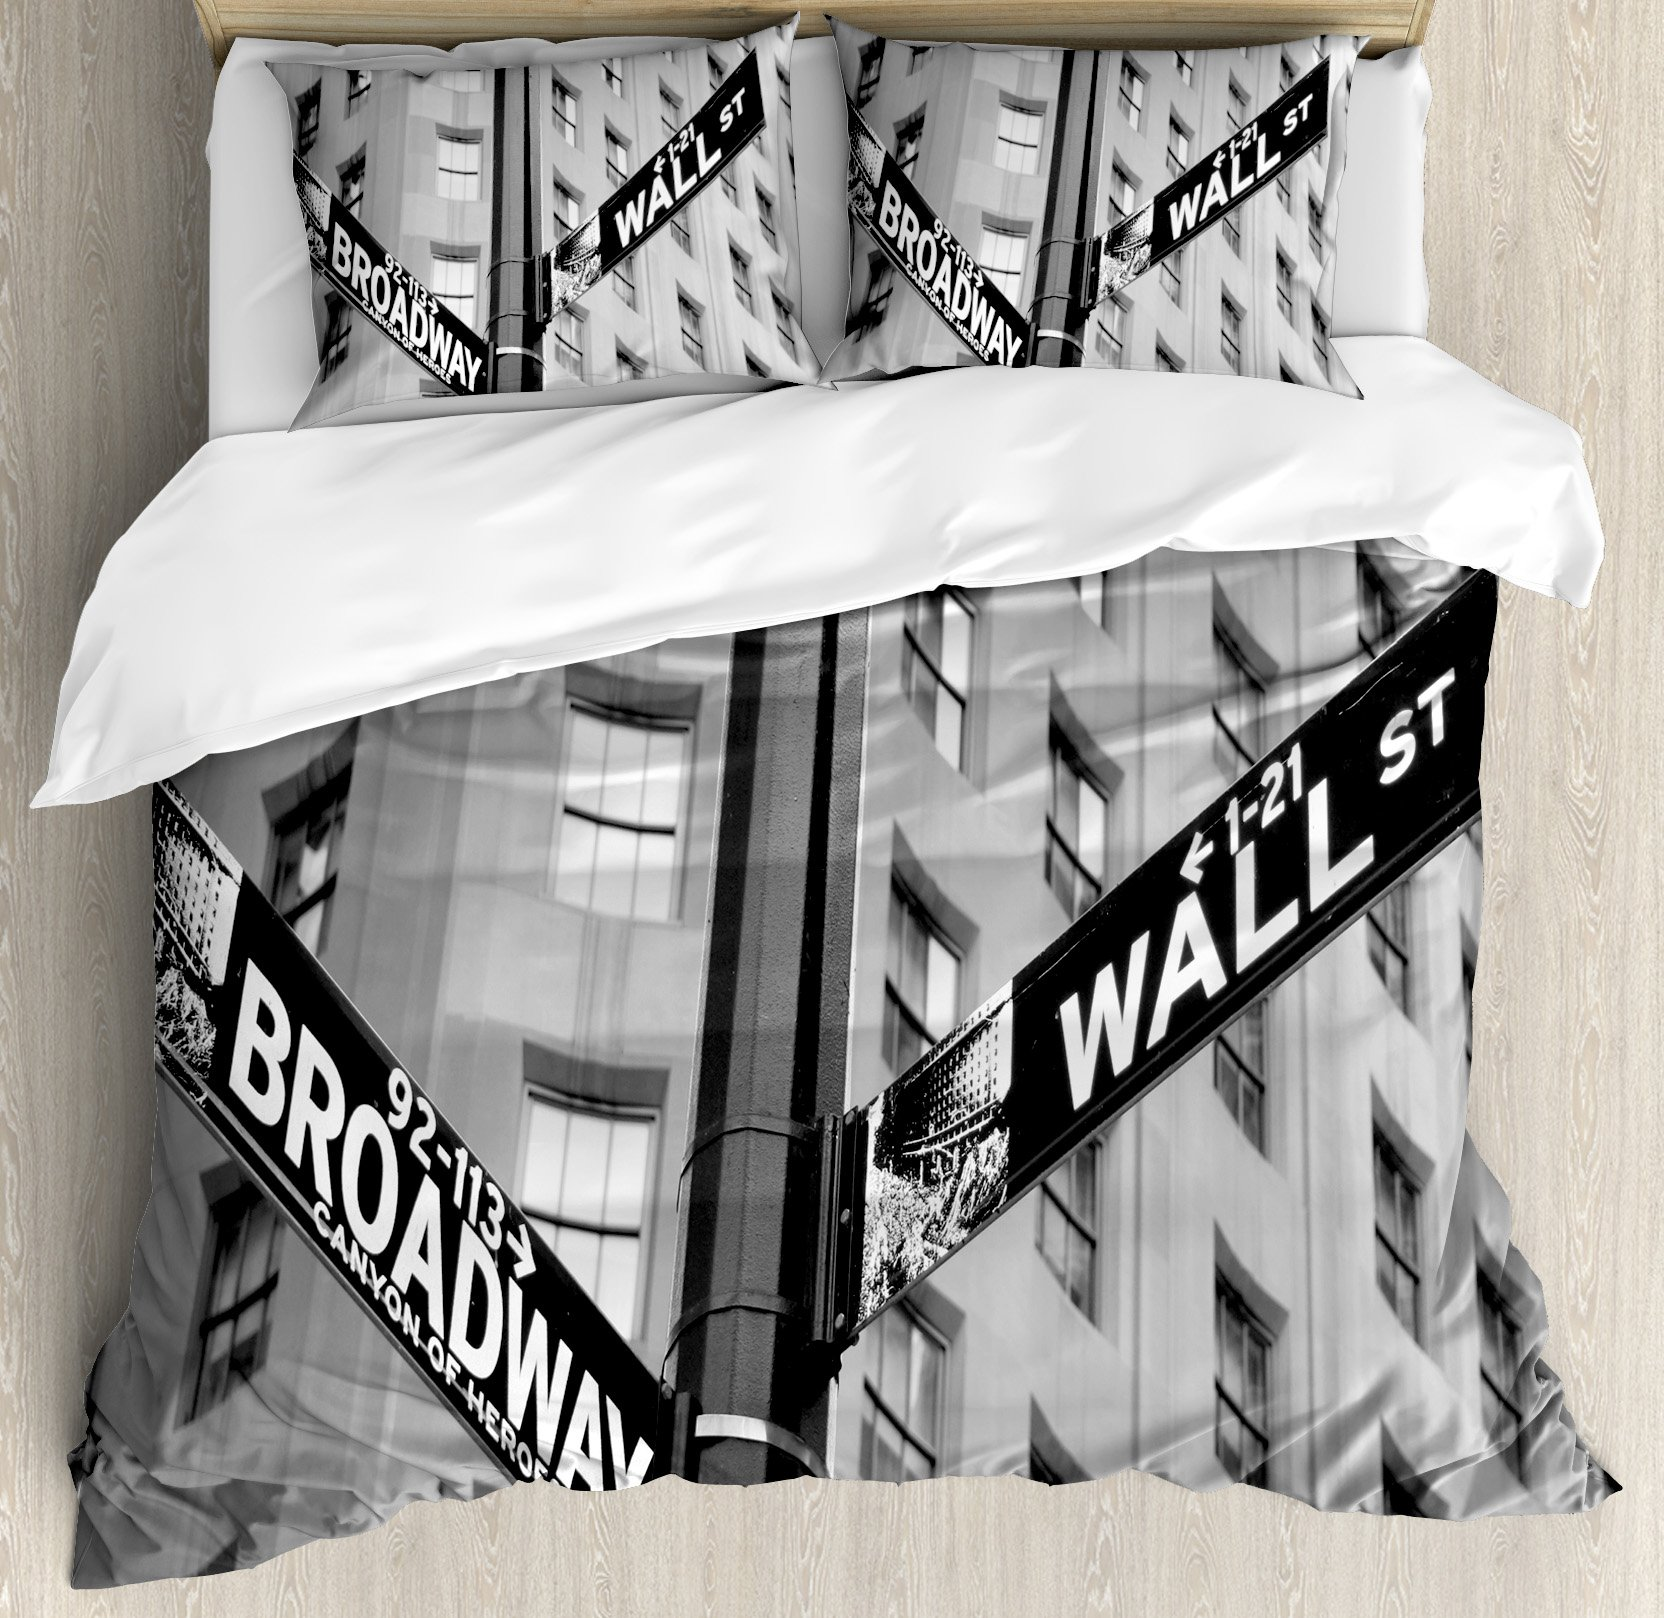 NYC Decor Duvet Cover Set by Ambesonne, Street Signs of intersection of Wall Street and Broadway Finance Art Destinations Photo, 3 Piece Bedding Set with Pillow Shams, Queen / Full, Black and White by Ambesonne